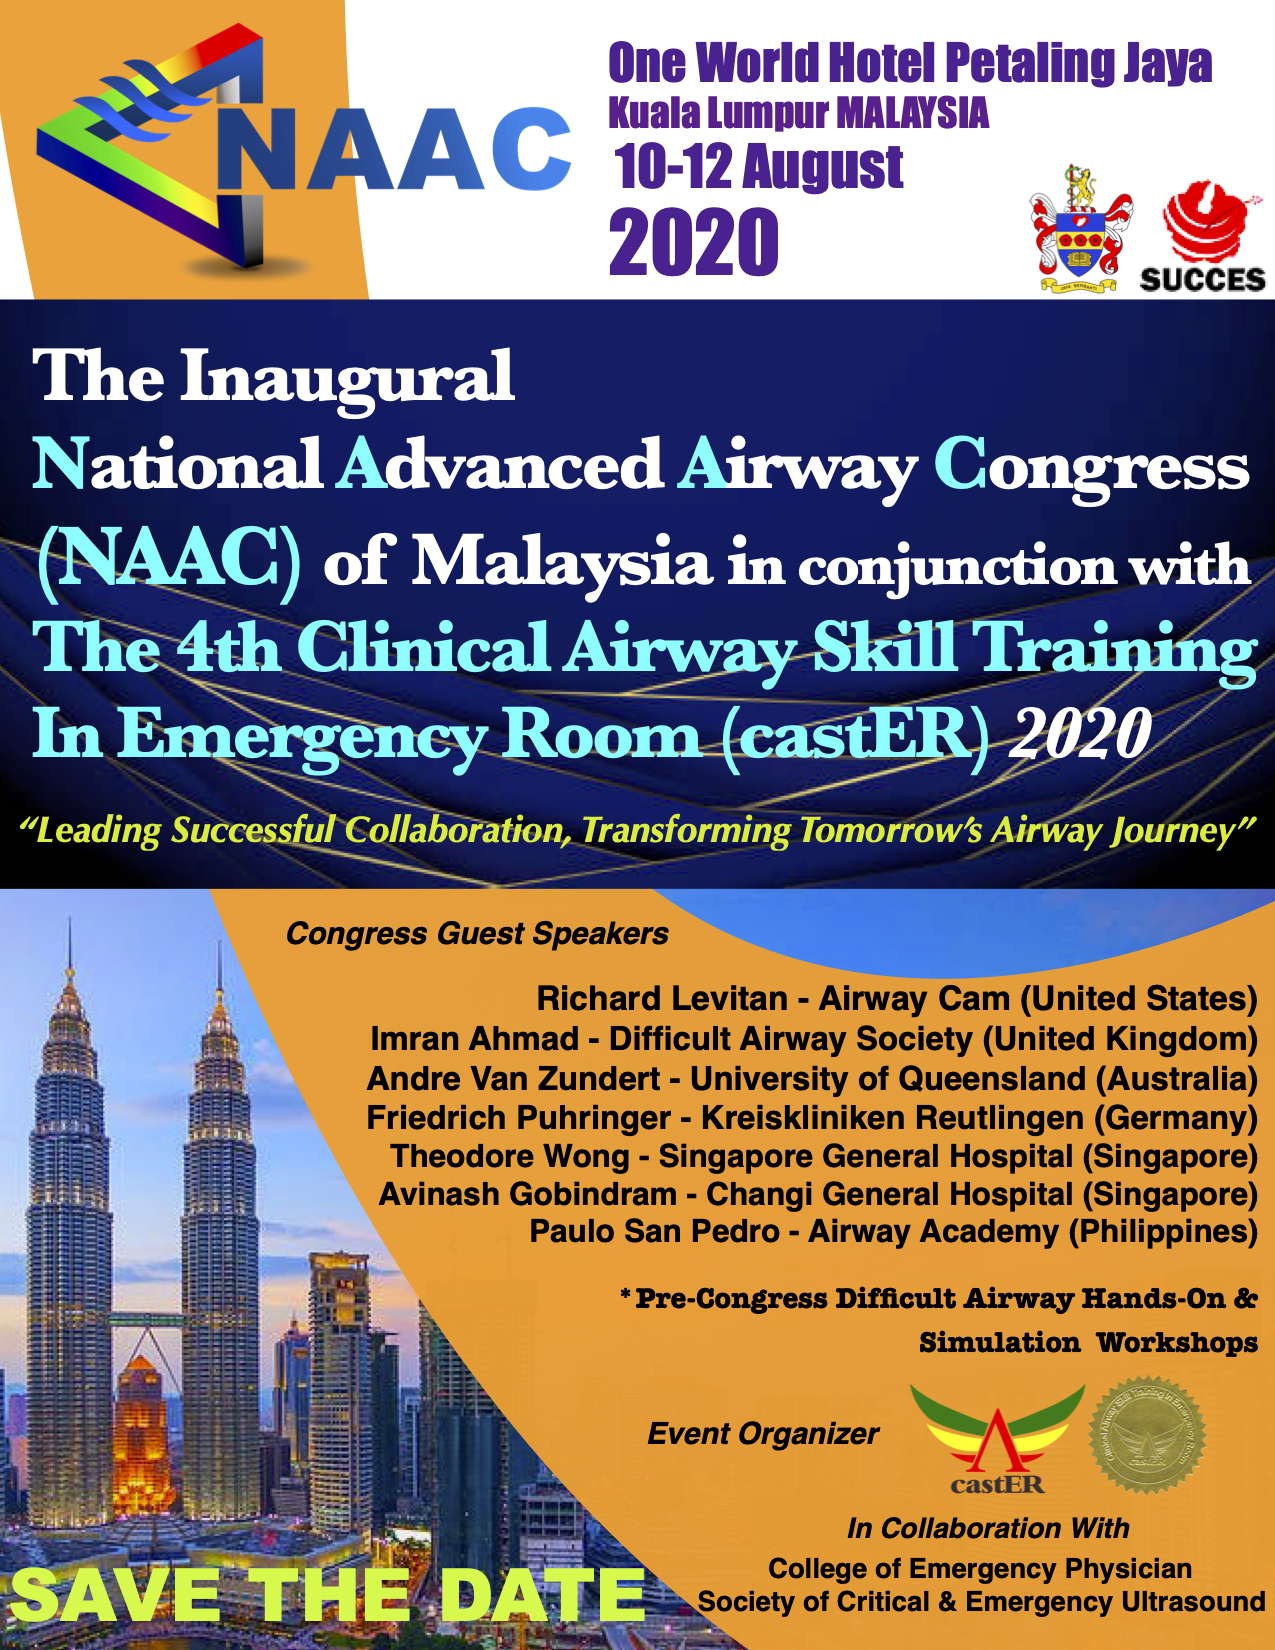 Save The Date & Meet Our World's Leading Airway Experts at NAAC Malaysia 2020, August 10-12